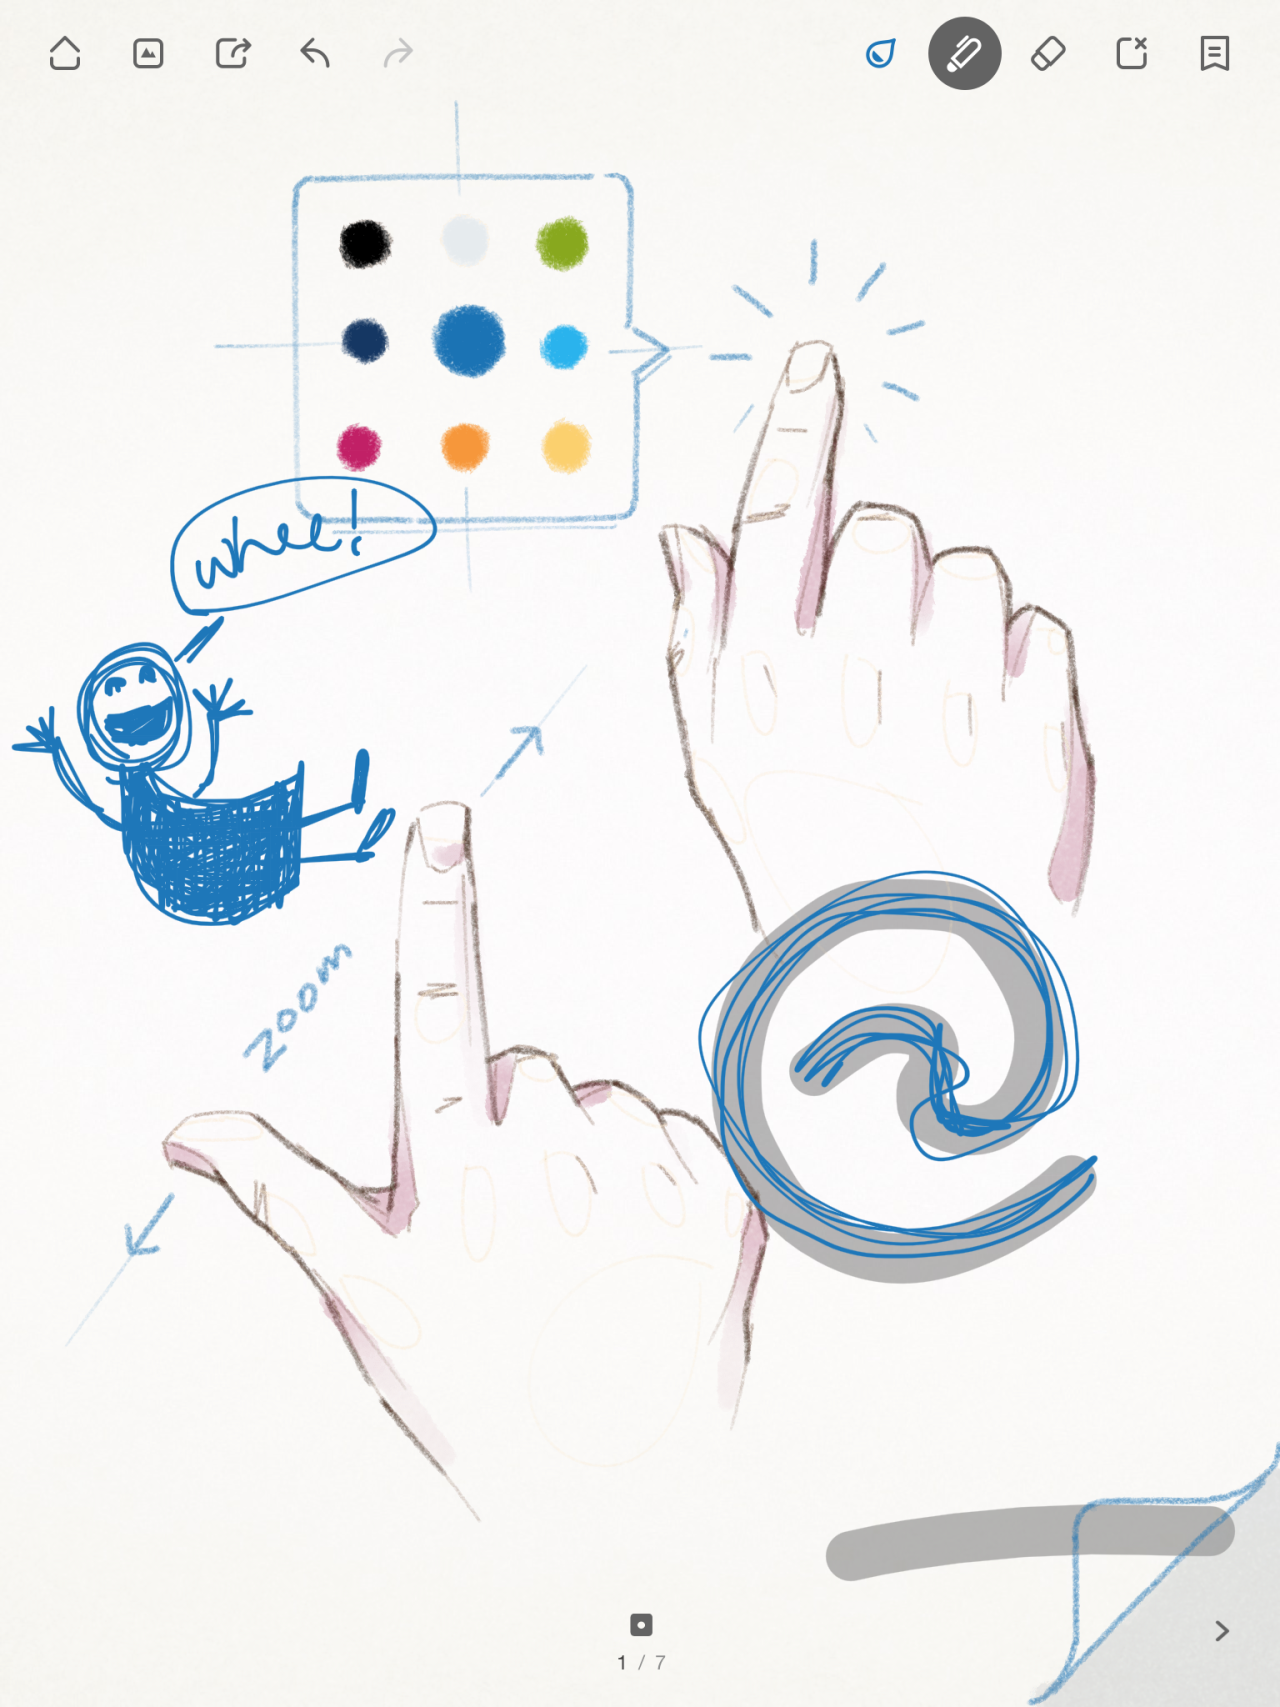 Screenshot from Wacom's Bamboo iPad drawing app, showing an example illustration on the first page of the user's first notebook, where the illustration itself gives some tips about how to use the UI while also demonstrating how things will look after that UI is used.